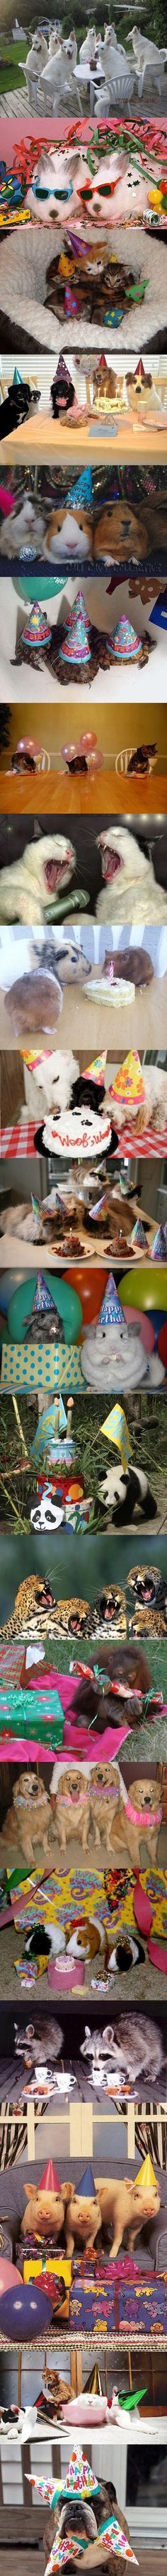 When animals party. this should not be as funny as it seems but I just can't stop giggling. Also, I'm putting party hats on the tortoises this summer. For sure.